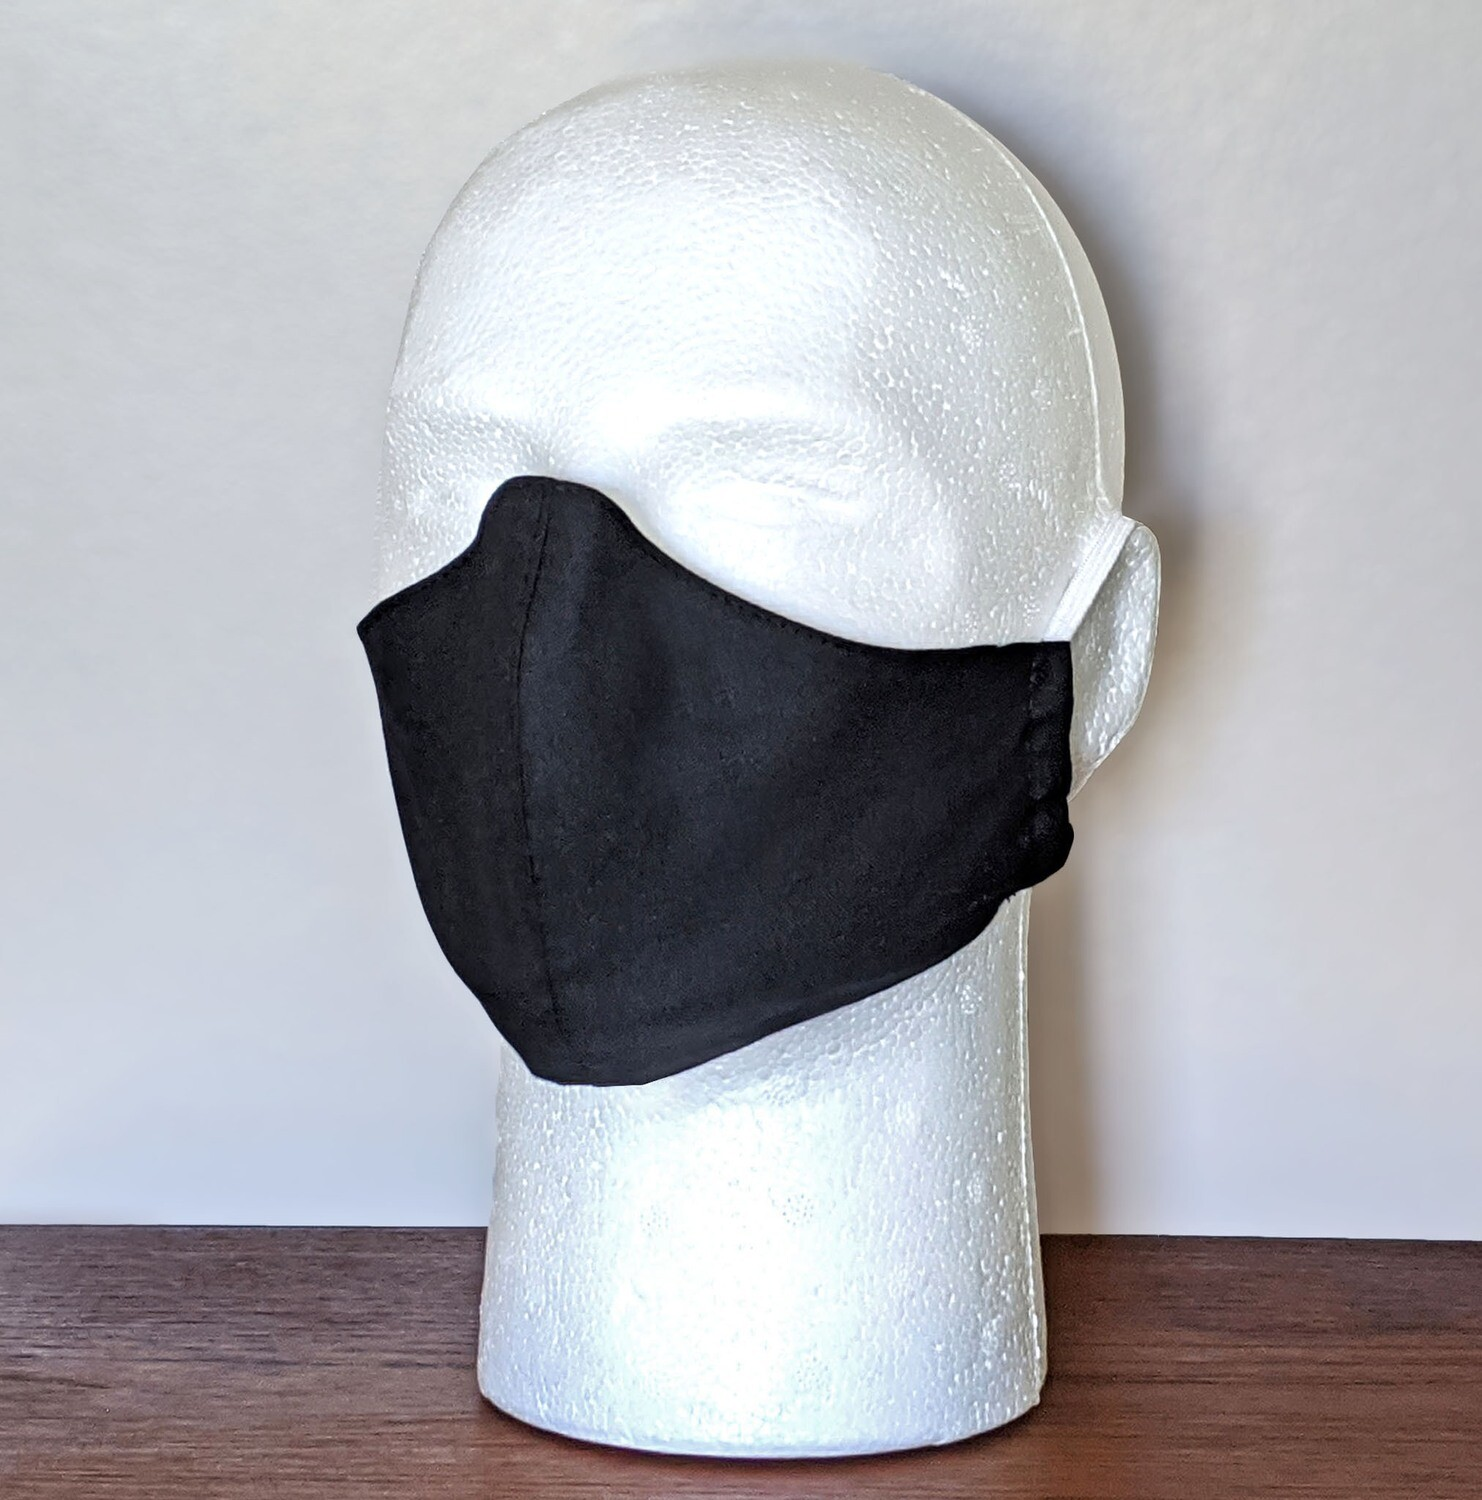 BASIC BLACK Face Masks, Unisex, Washable, Reusable, Double Layer for Smog, Pollen, Dust, Smoke. Made in USA